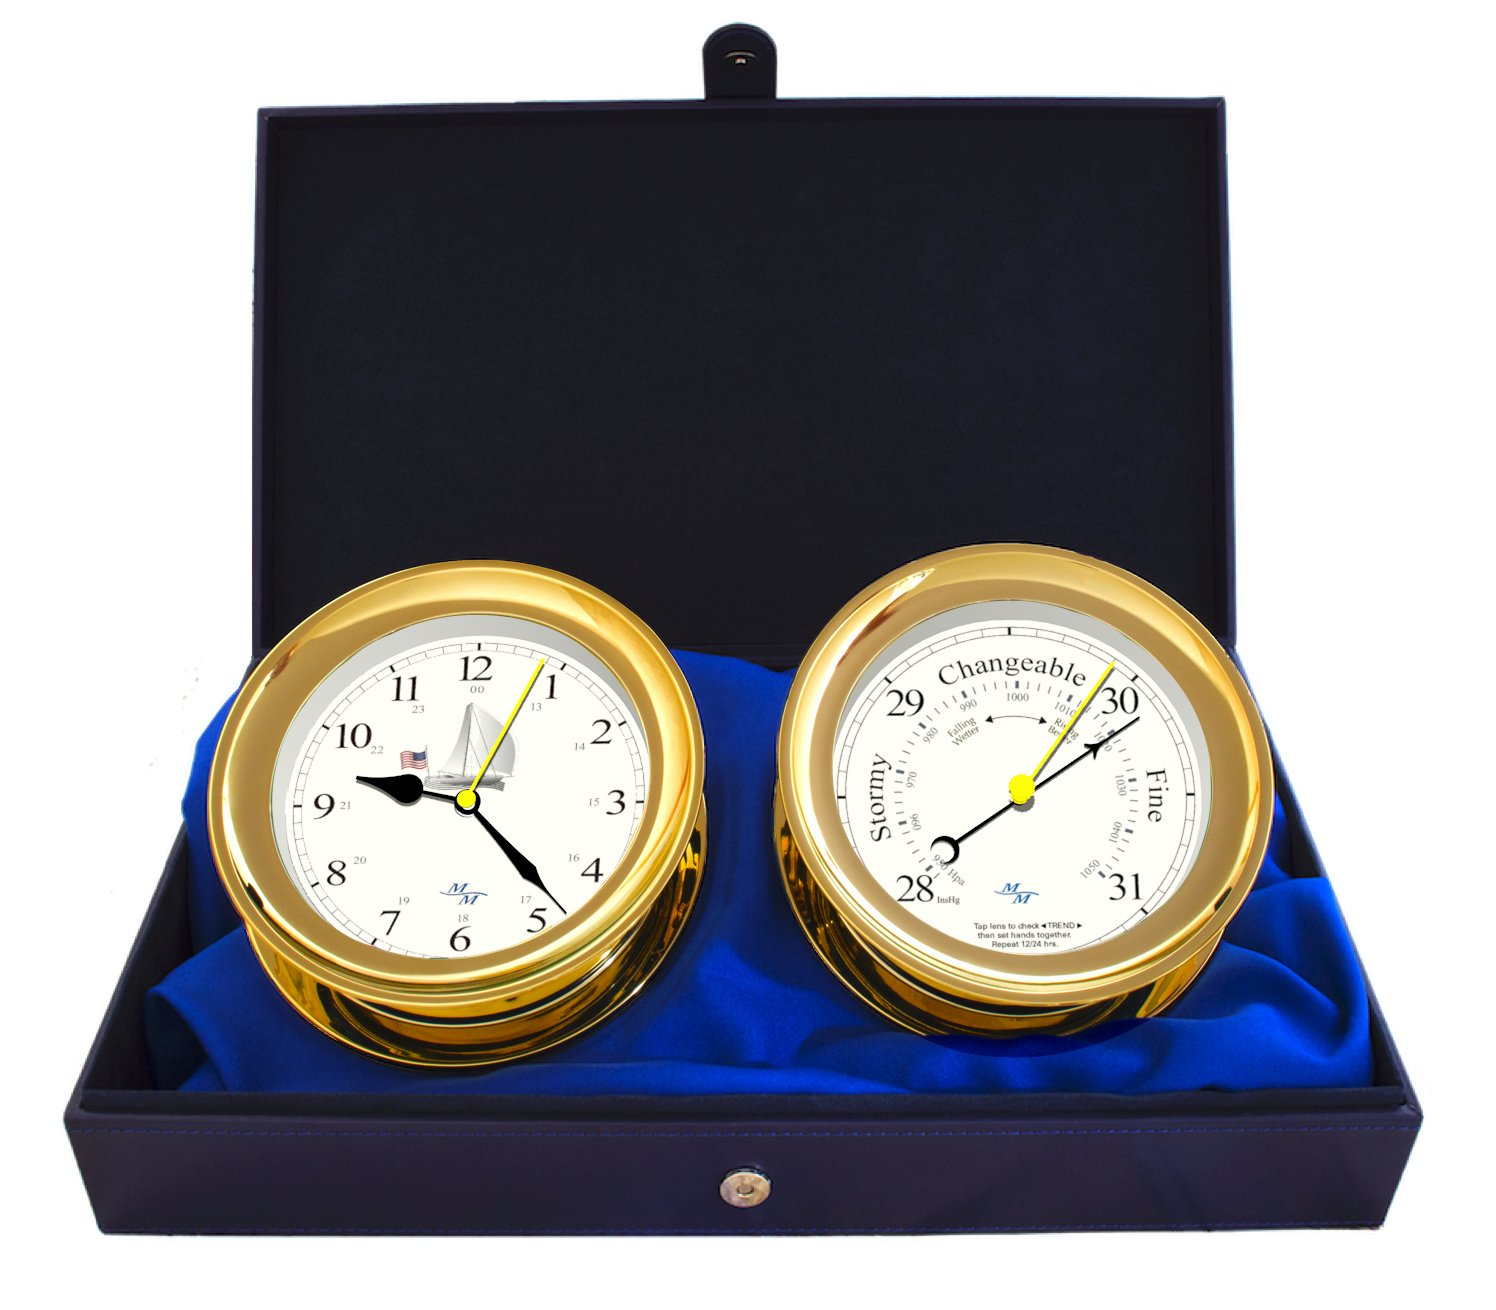 "MASTER-MARINER USA Patriot Collection, Nautical Windlass Gift Set, 5.85"" Diameter Clock and Barometer Instruments, Gold Tone Finish, Ivory Patriot Dial"